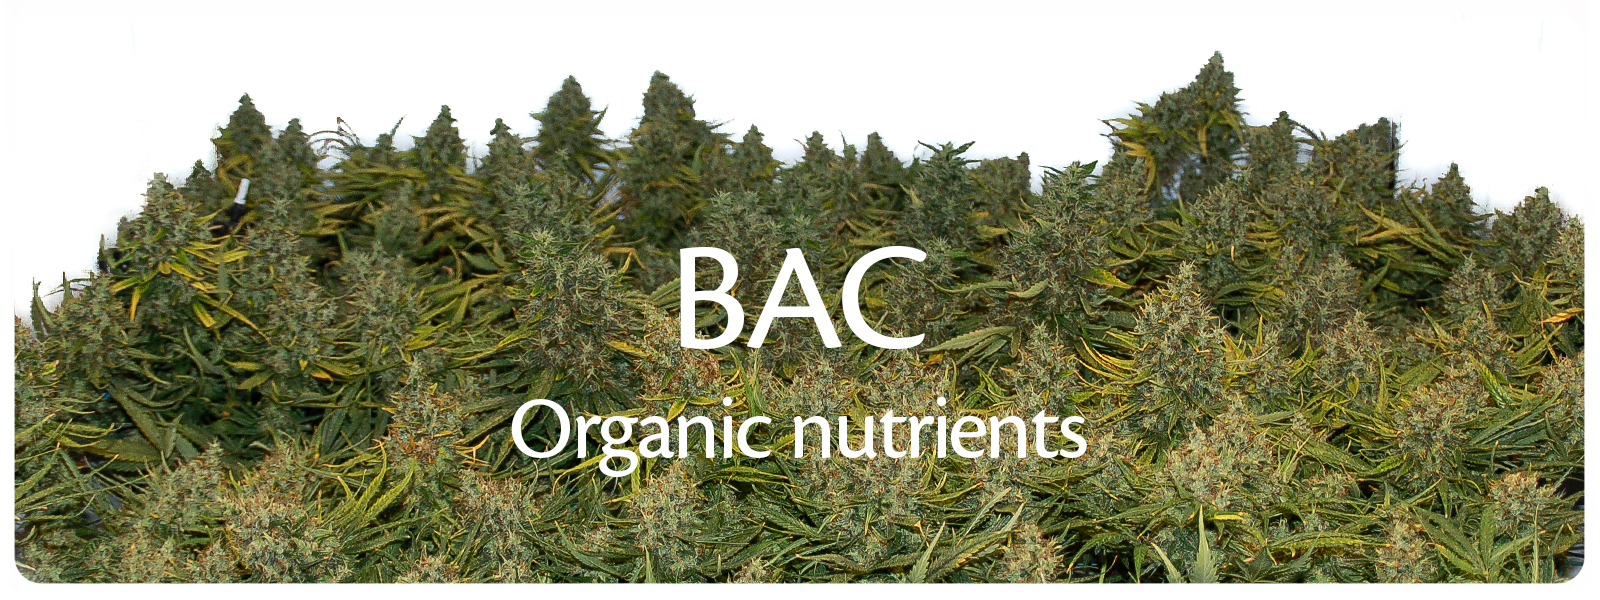 BAC biological fertilisers and soil life nutrients for strong and healthy cannabis plants